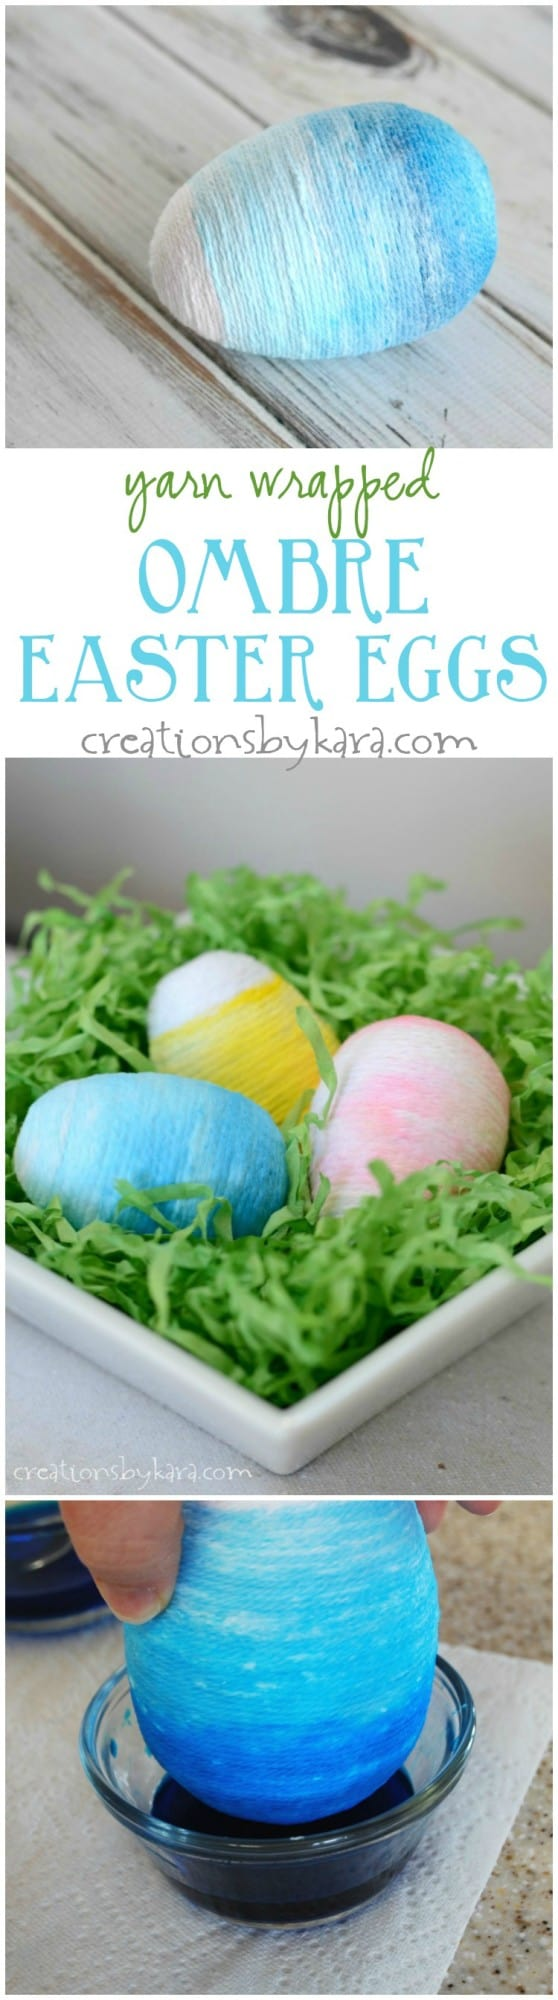 Yarn Wrapped Ombre Easter Egg Tutorial-